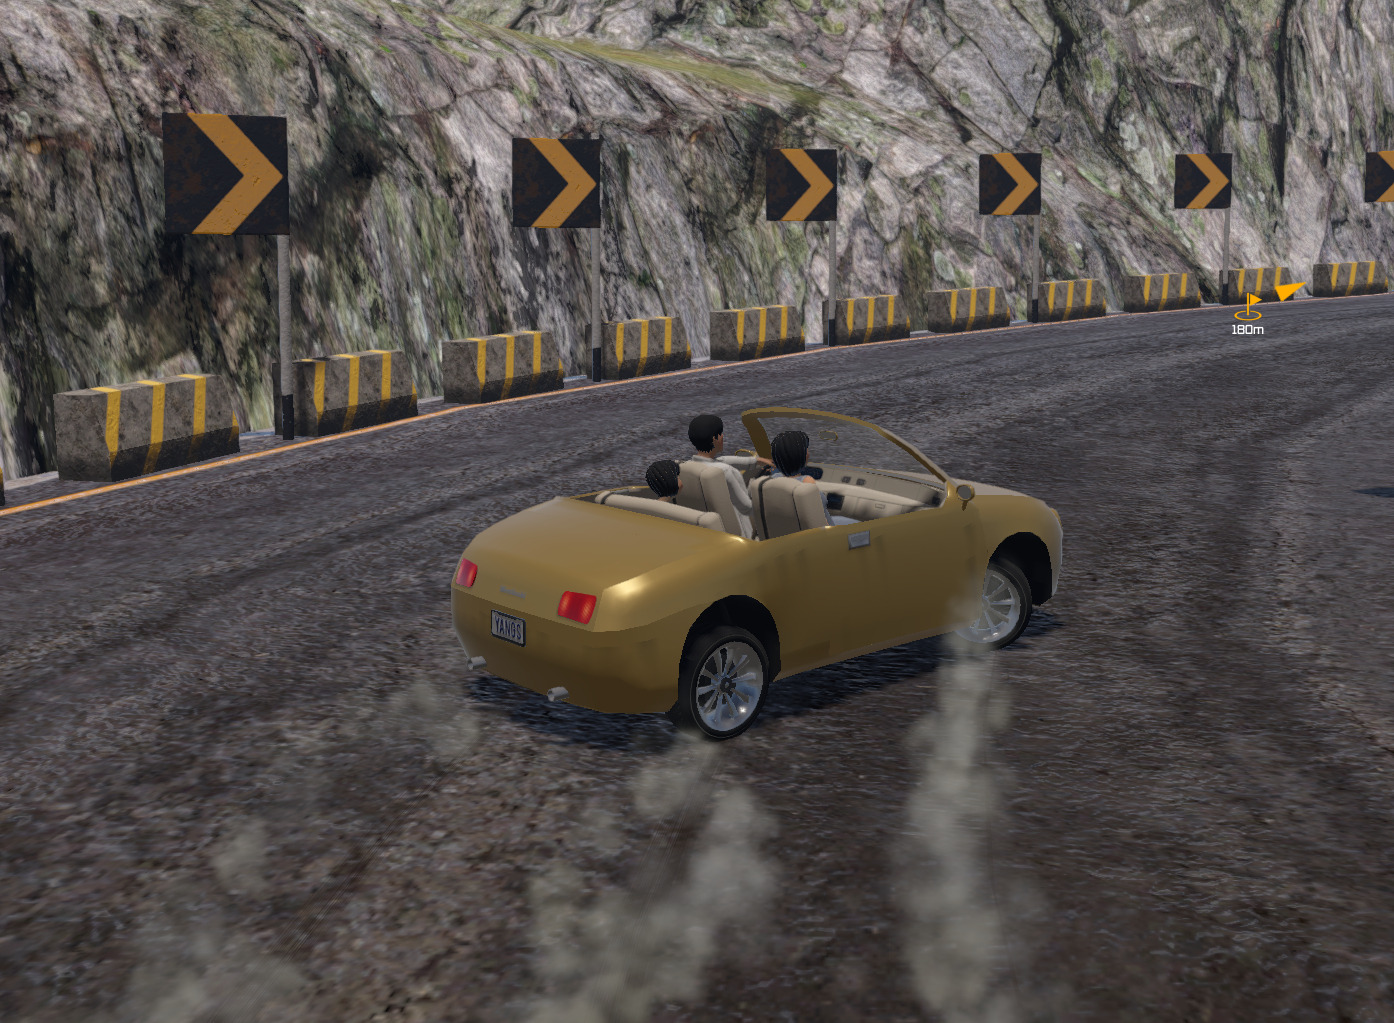 Mountain Pass 1 & 2 can be fully completed at full acceleration.  Can you do it?